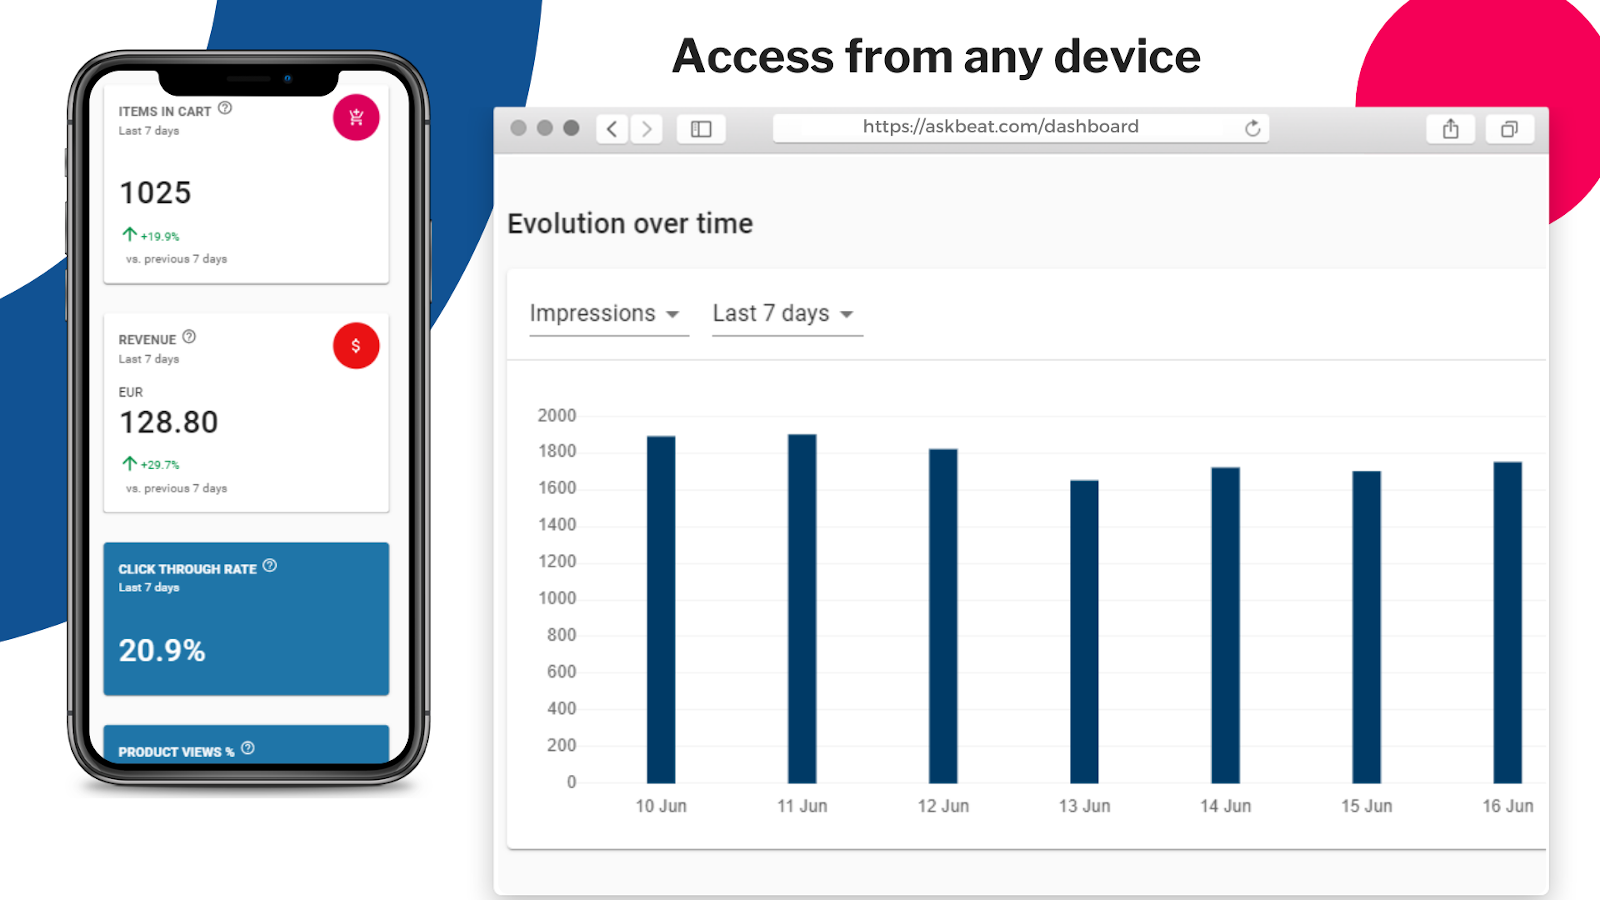 Access from any device - AskBeat Recommendations